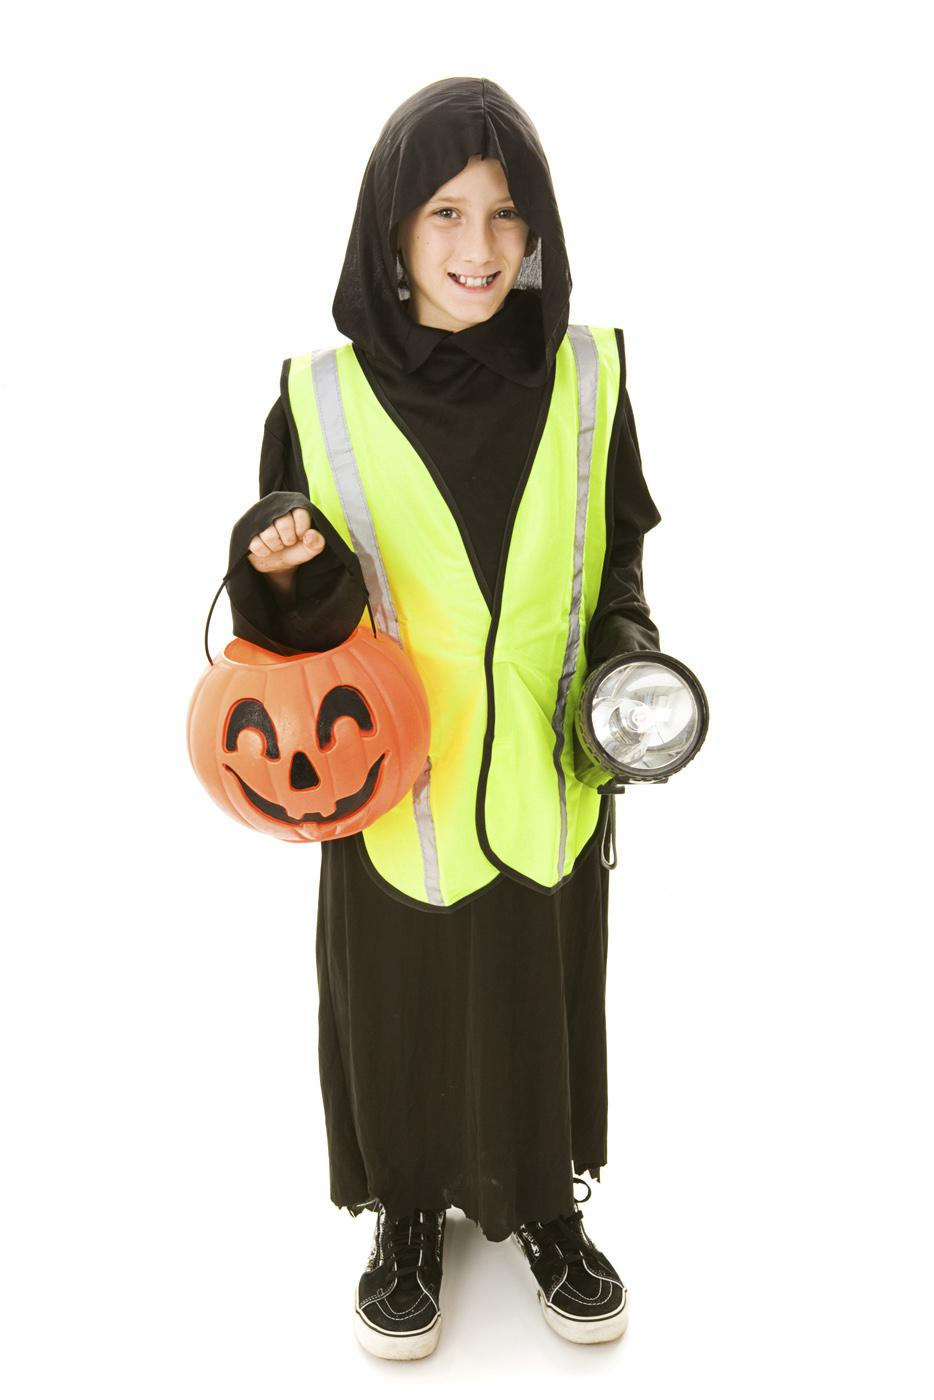 Safety experts advise trick-or-treaters to carry a flashlight, wear shoes that fit properly, avoid long costumes that could cause tripping and use reflective tape on costumes and candy buckets. (Photo by Lisa F. Young/Photos.com)